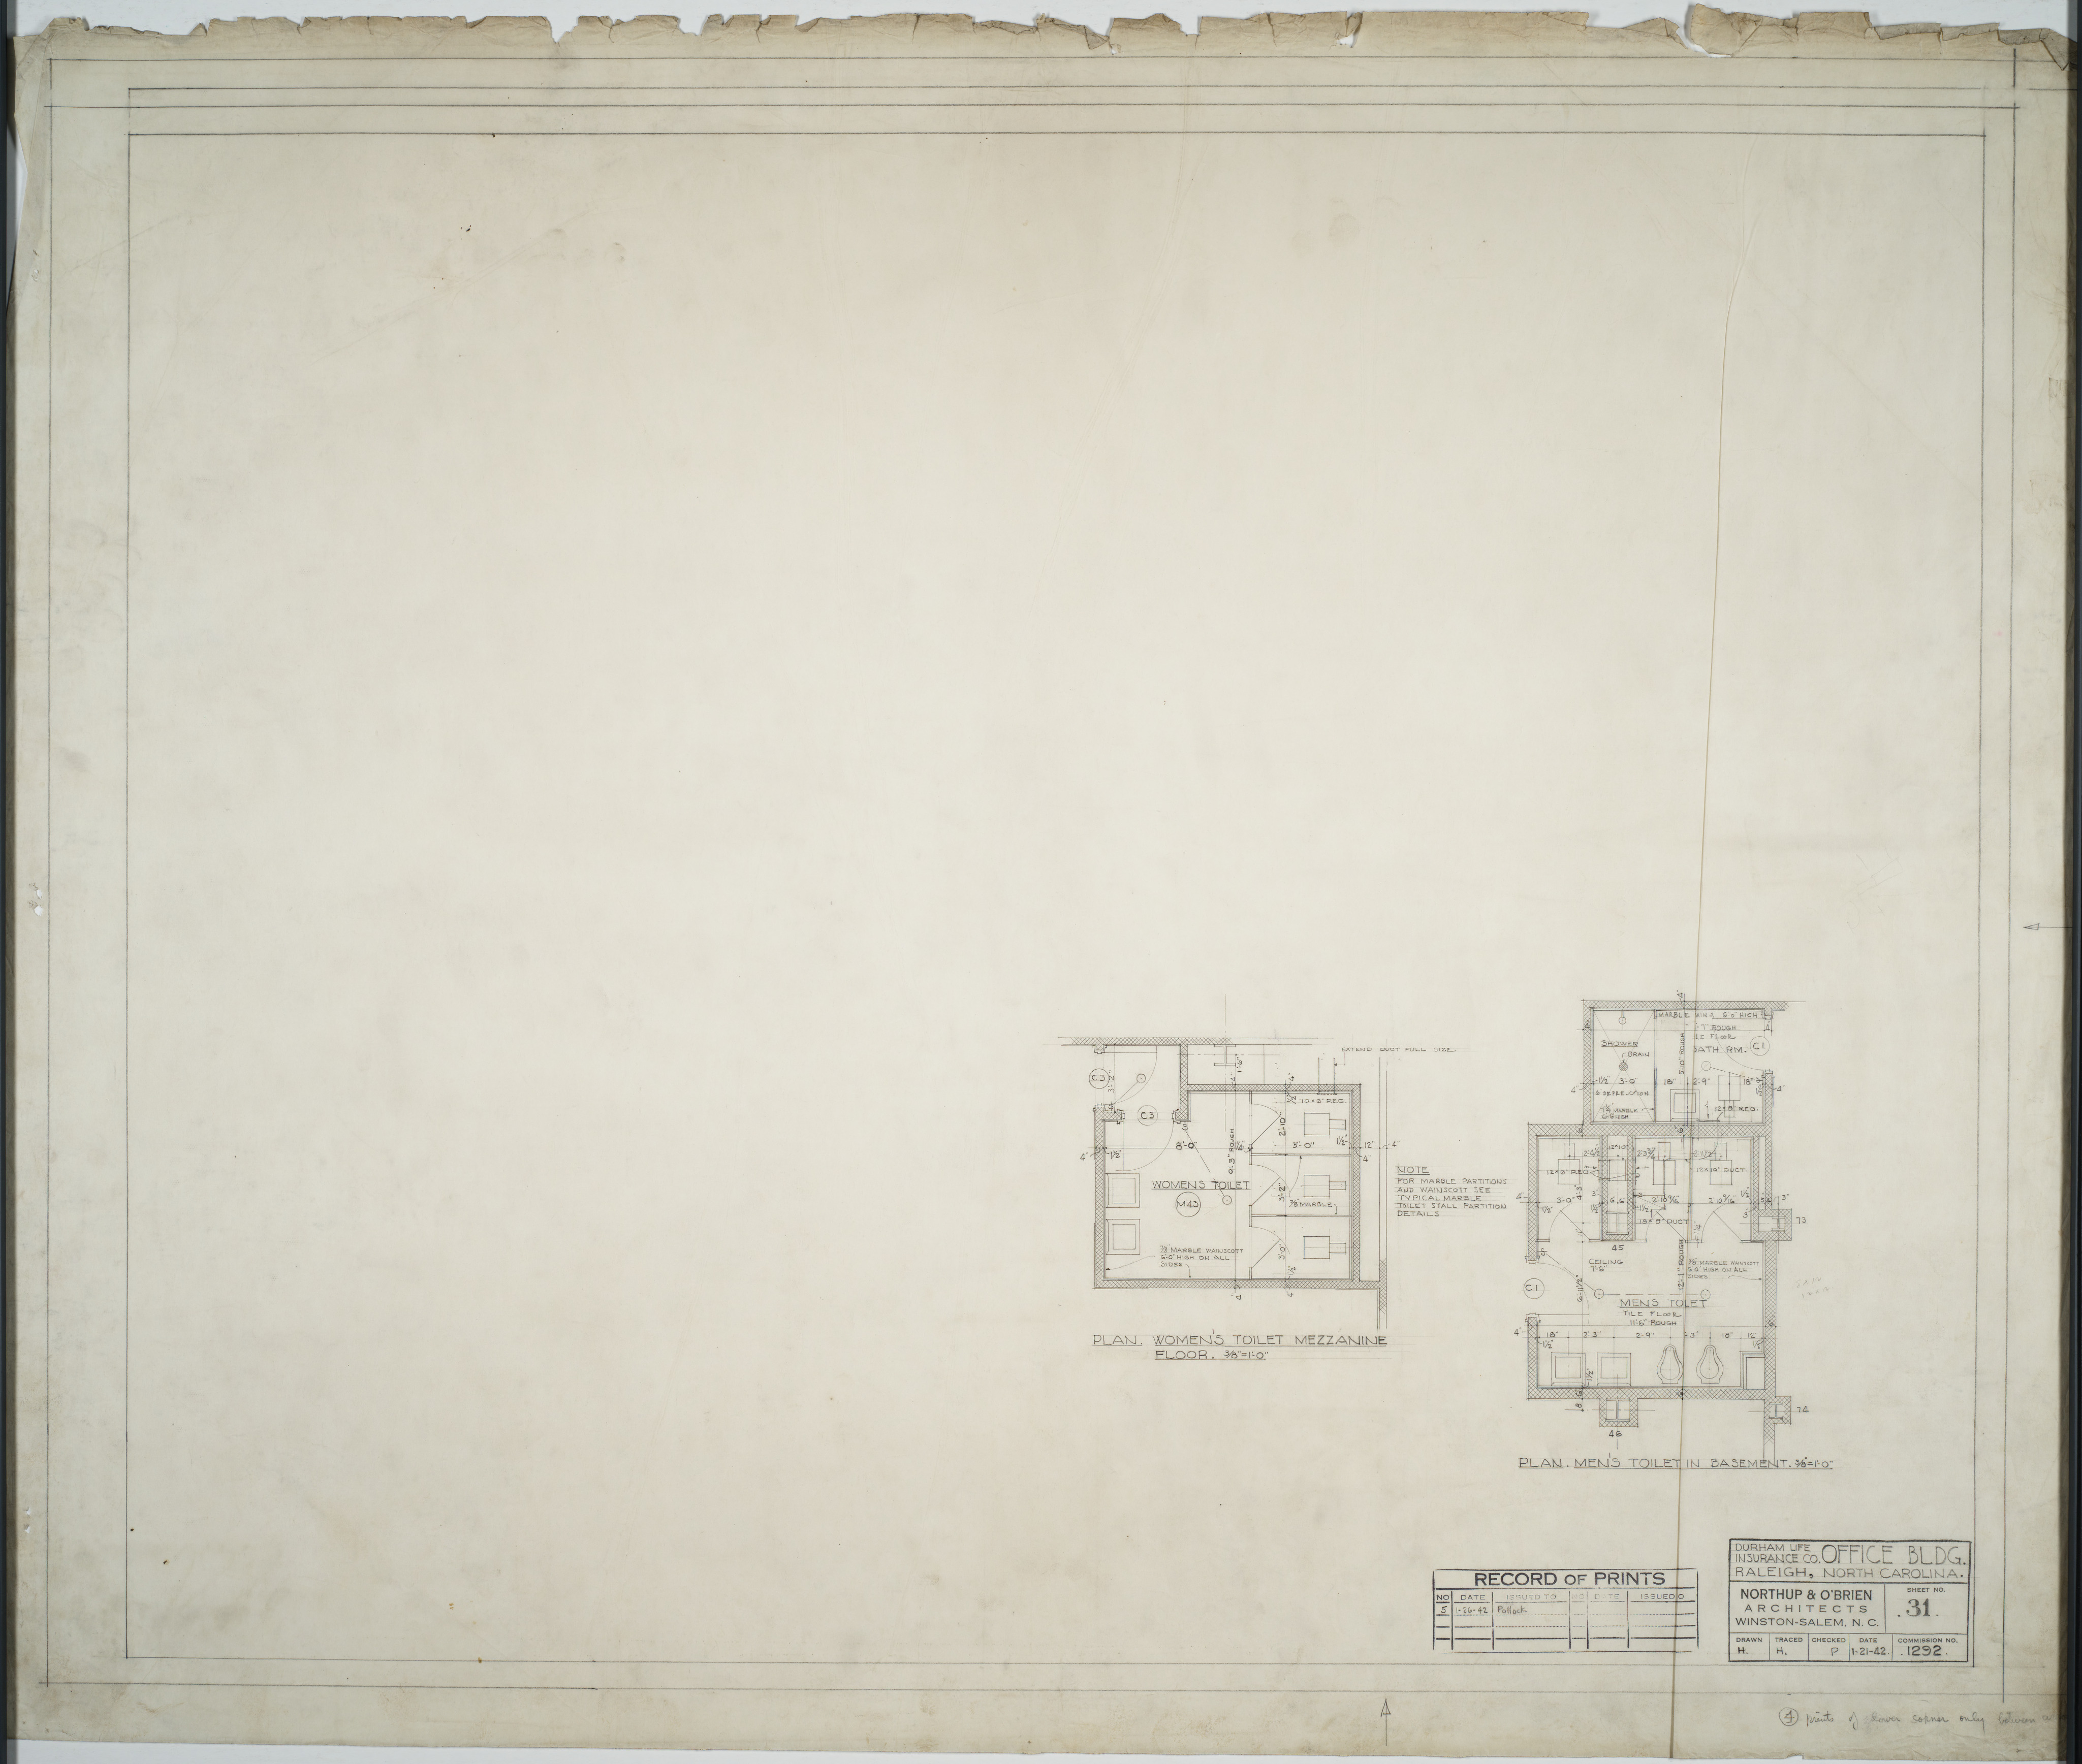 Bathroom Floor Plans Durham Life Insurance Company Raleigh N C Mc00240 001 Ff0310 001